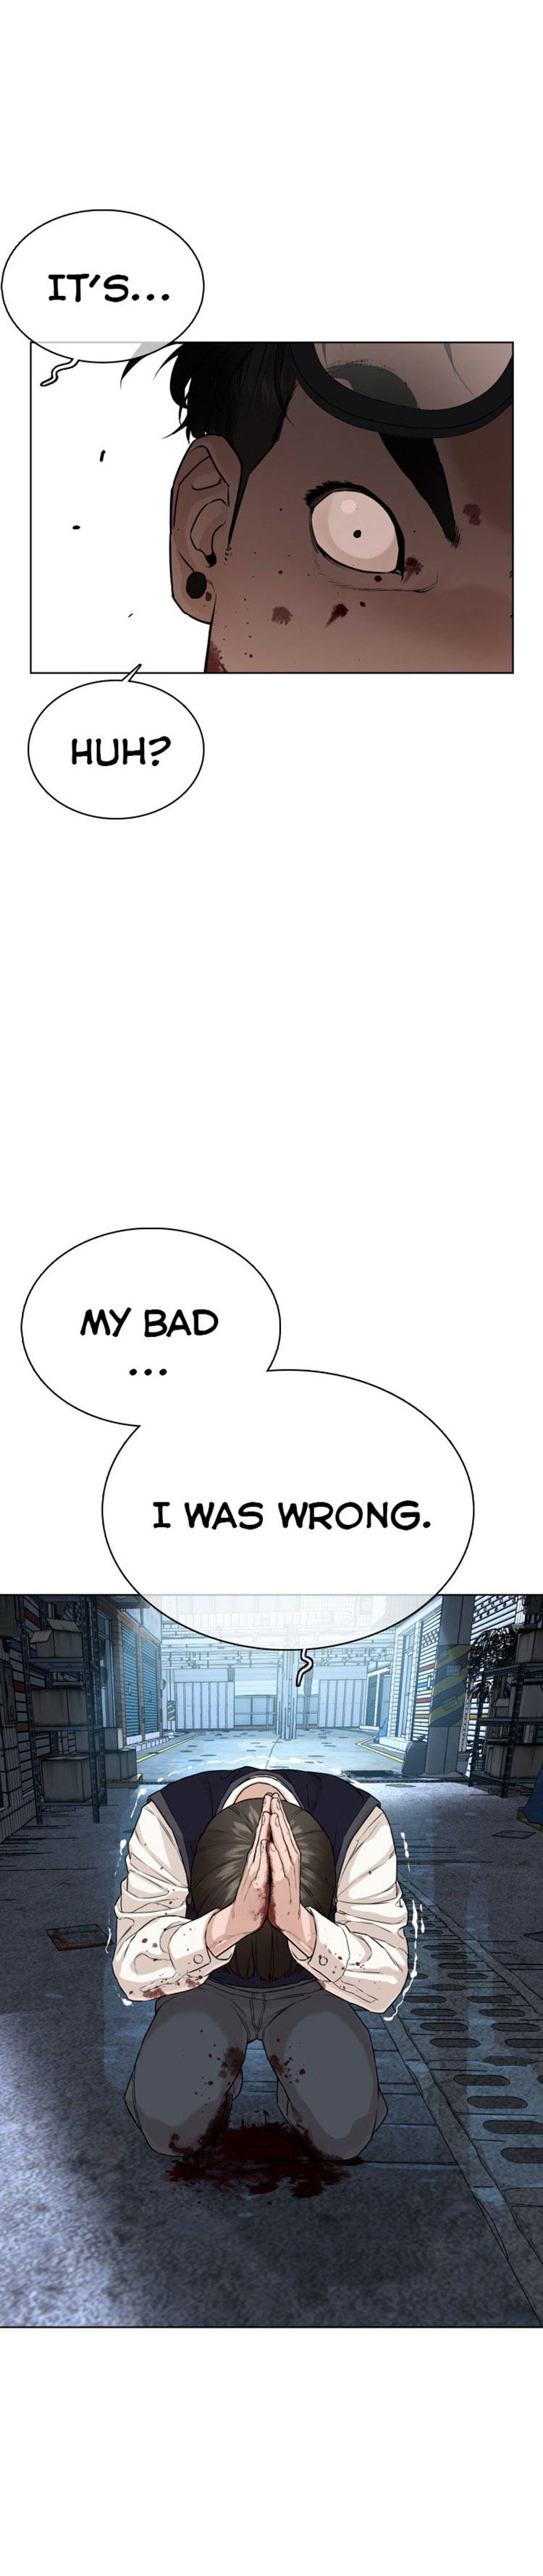 How To Fight Chapter 30: Pretend To Be Scared And Hit. page 15 - Mangakakalots.com